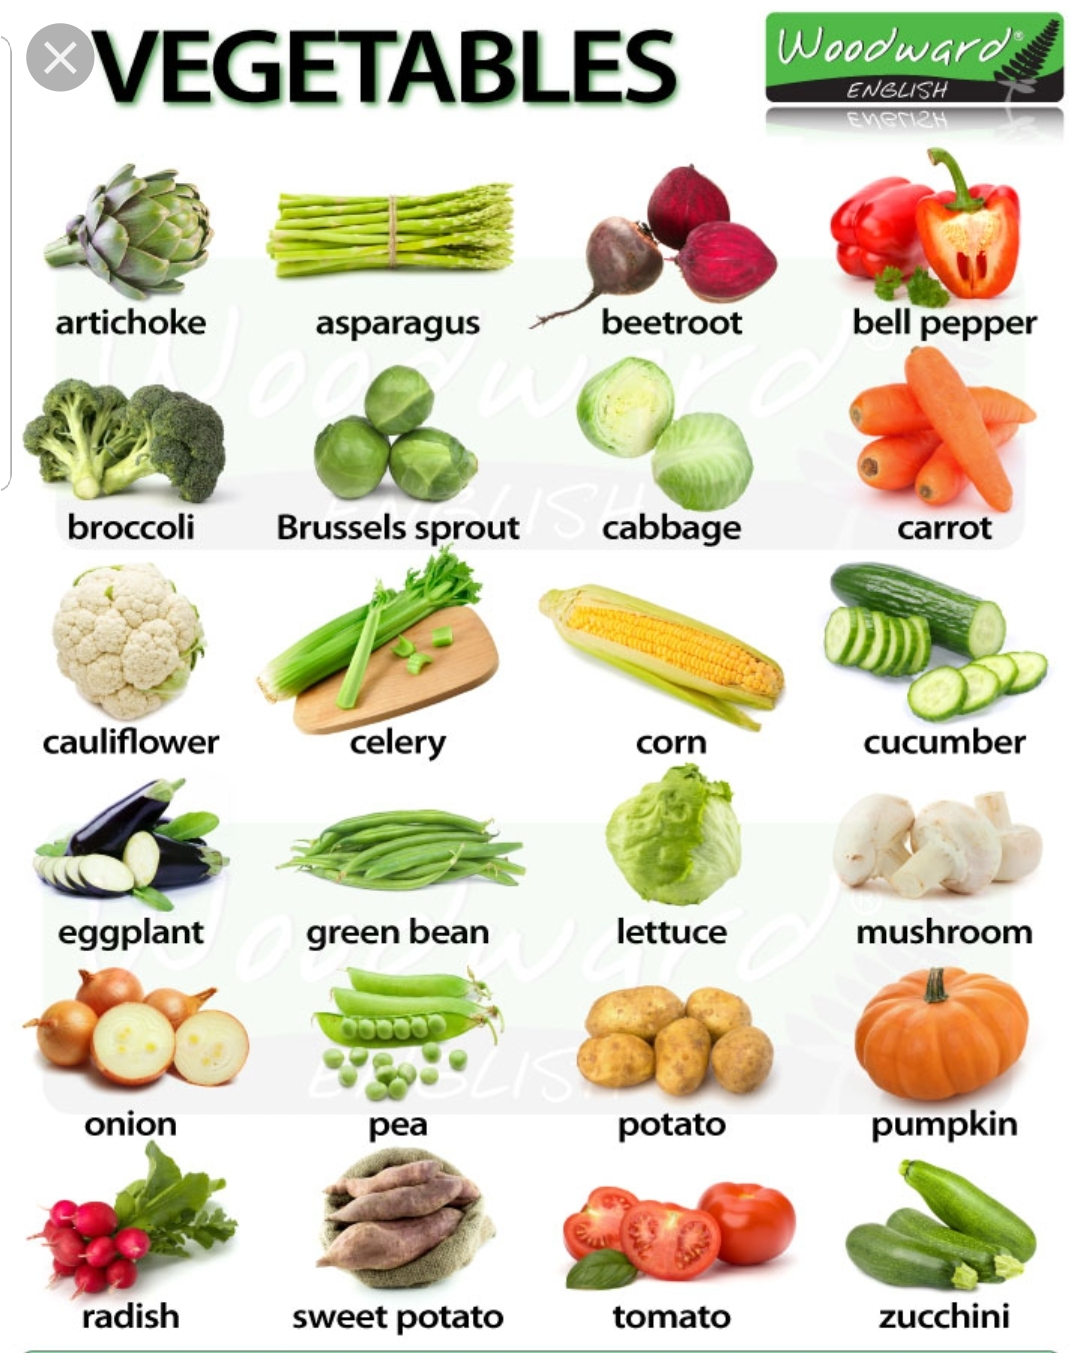 Learn the vegetables